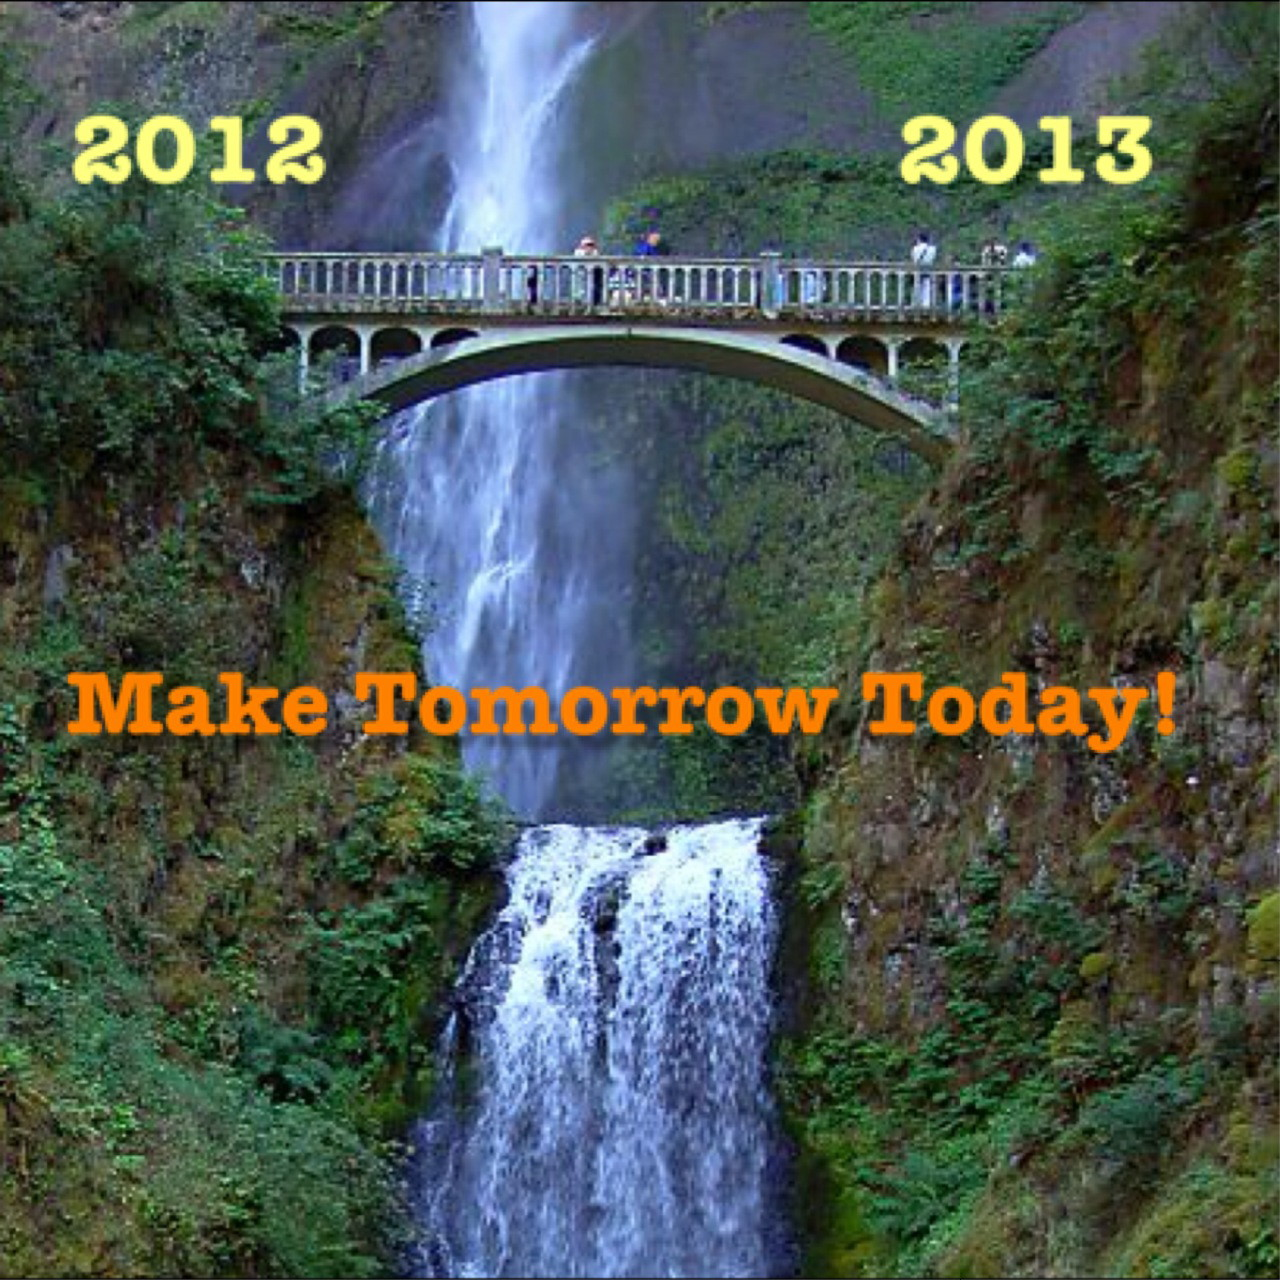 ArtShine: Don't wait til the NEW YEAR, Make Tomorrow Today!